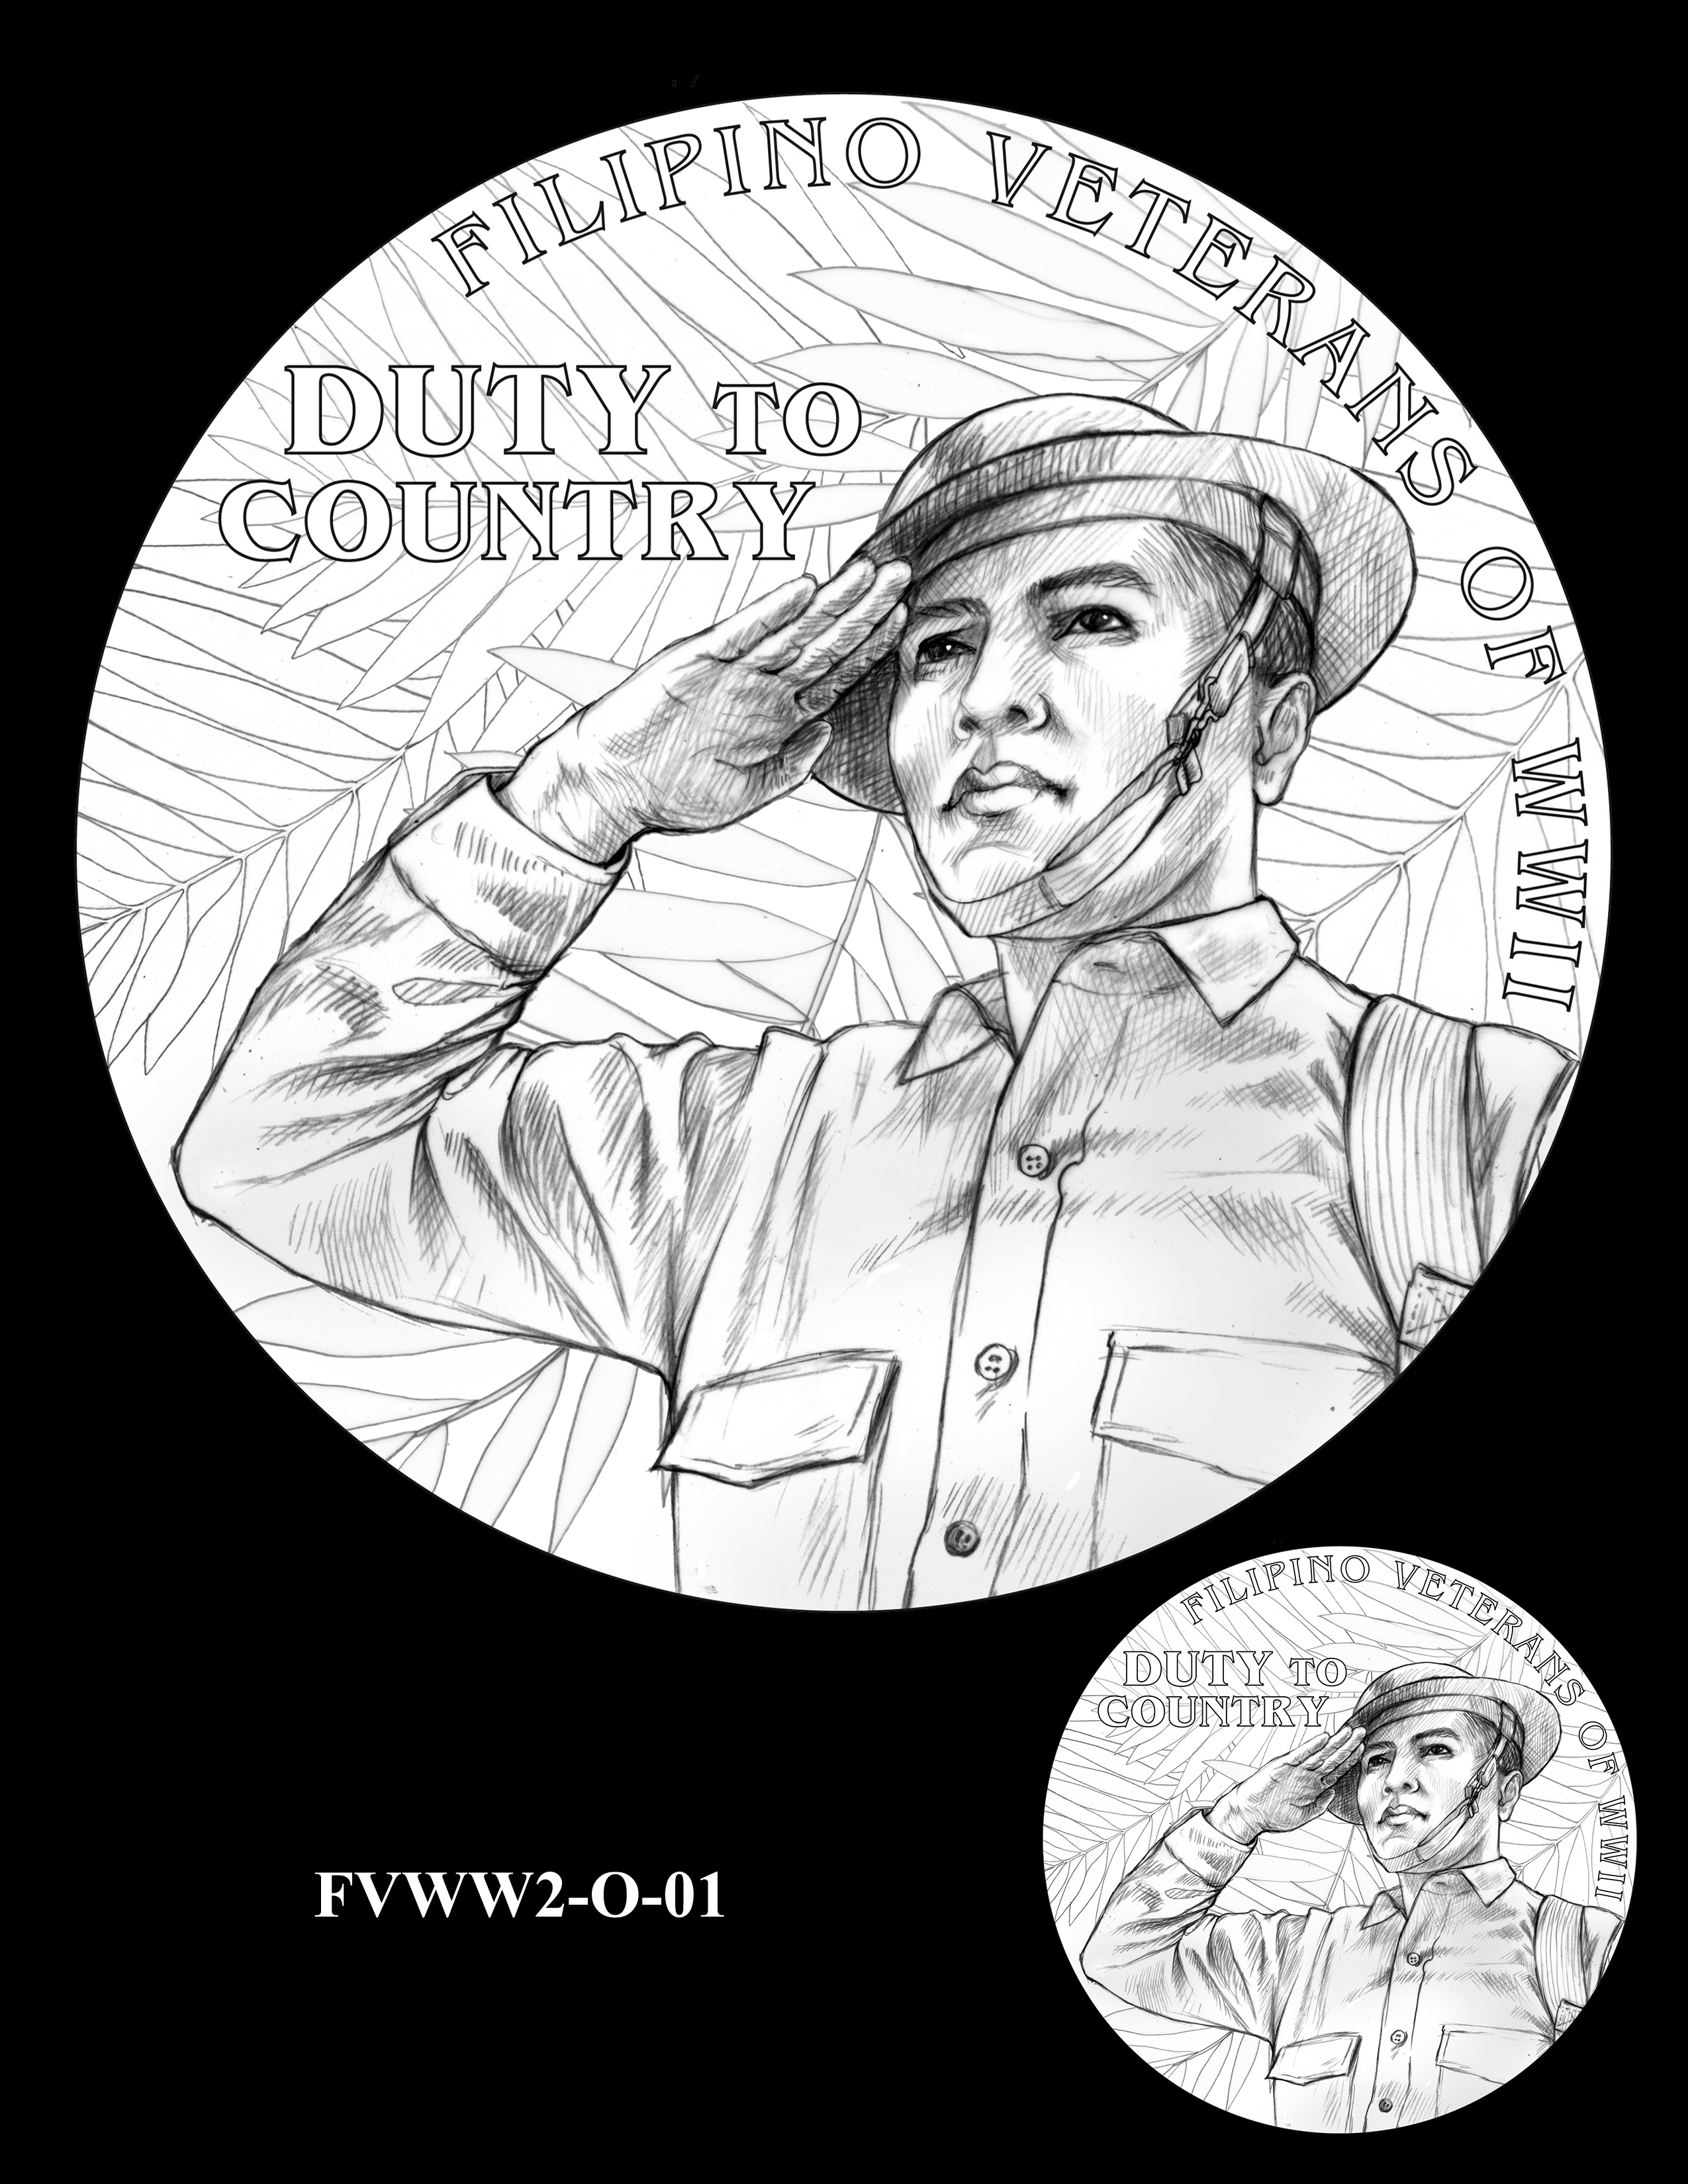 FVWW2-O-01 -- Filipino Veterans of World War II Congressional Gold Medal